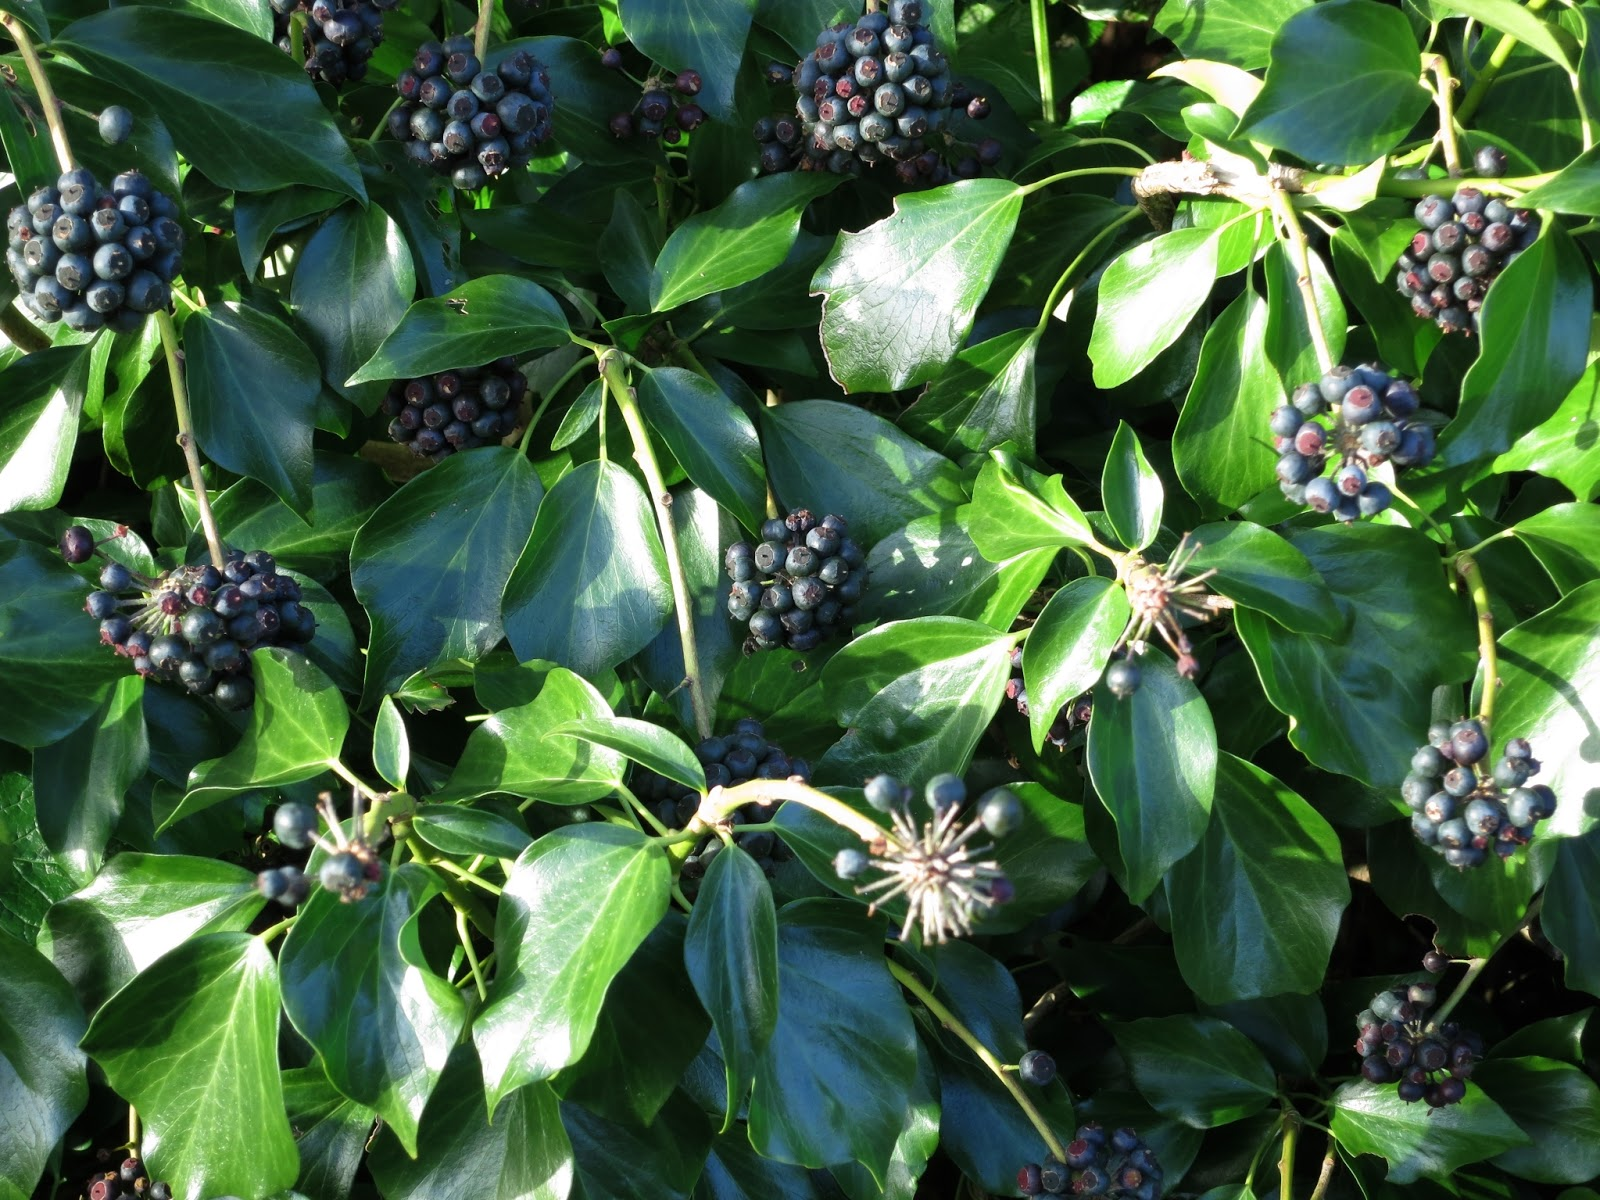 Clusters of black ivy berries and lots of mature ivy leaves